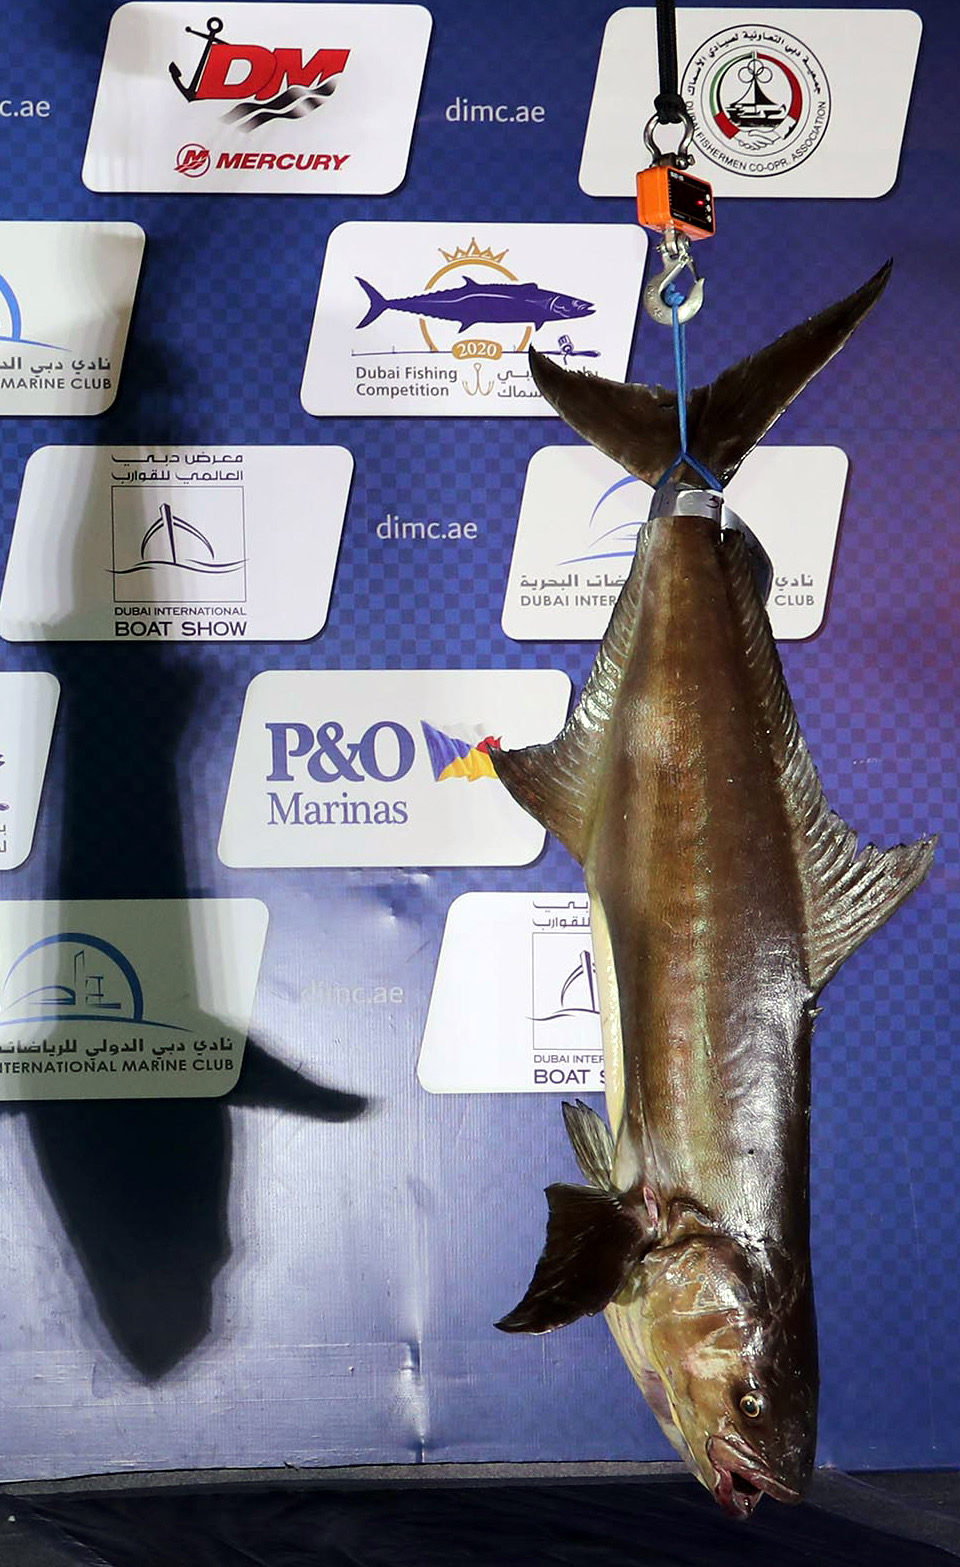 Blazing Competition at Dubai Fishing Competition